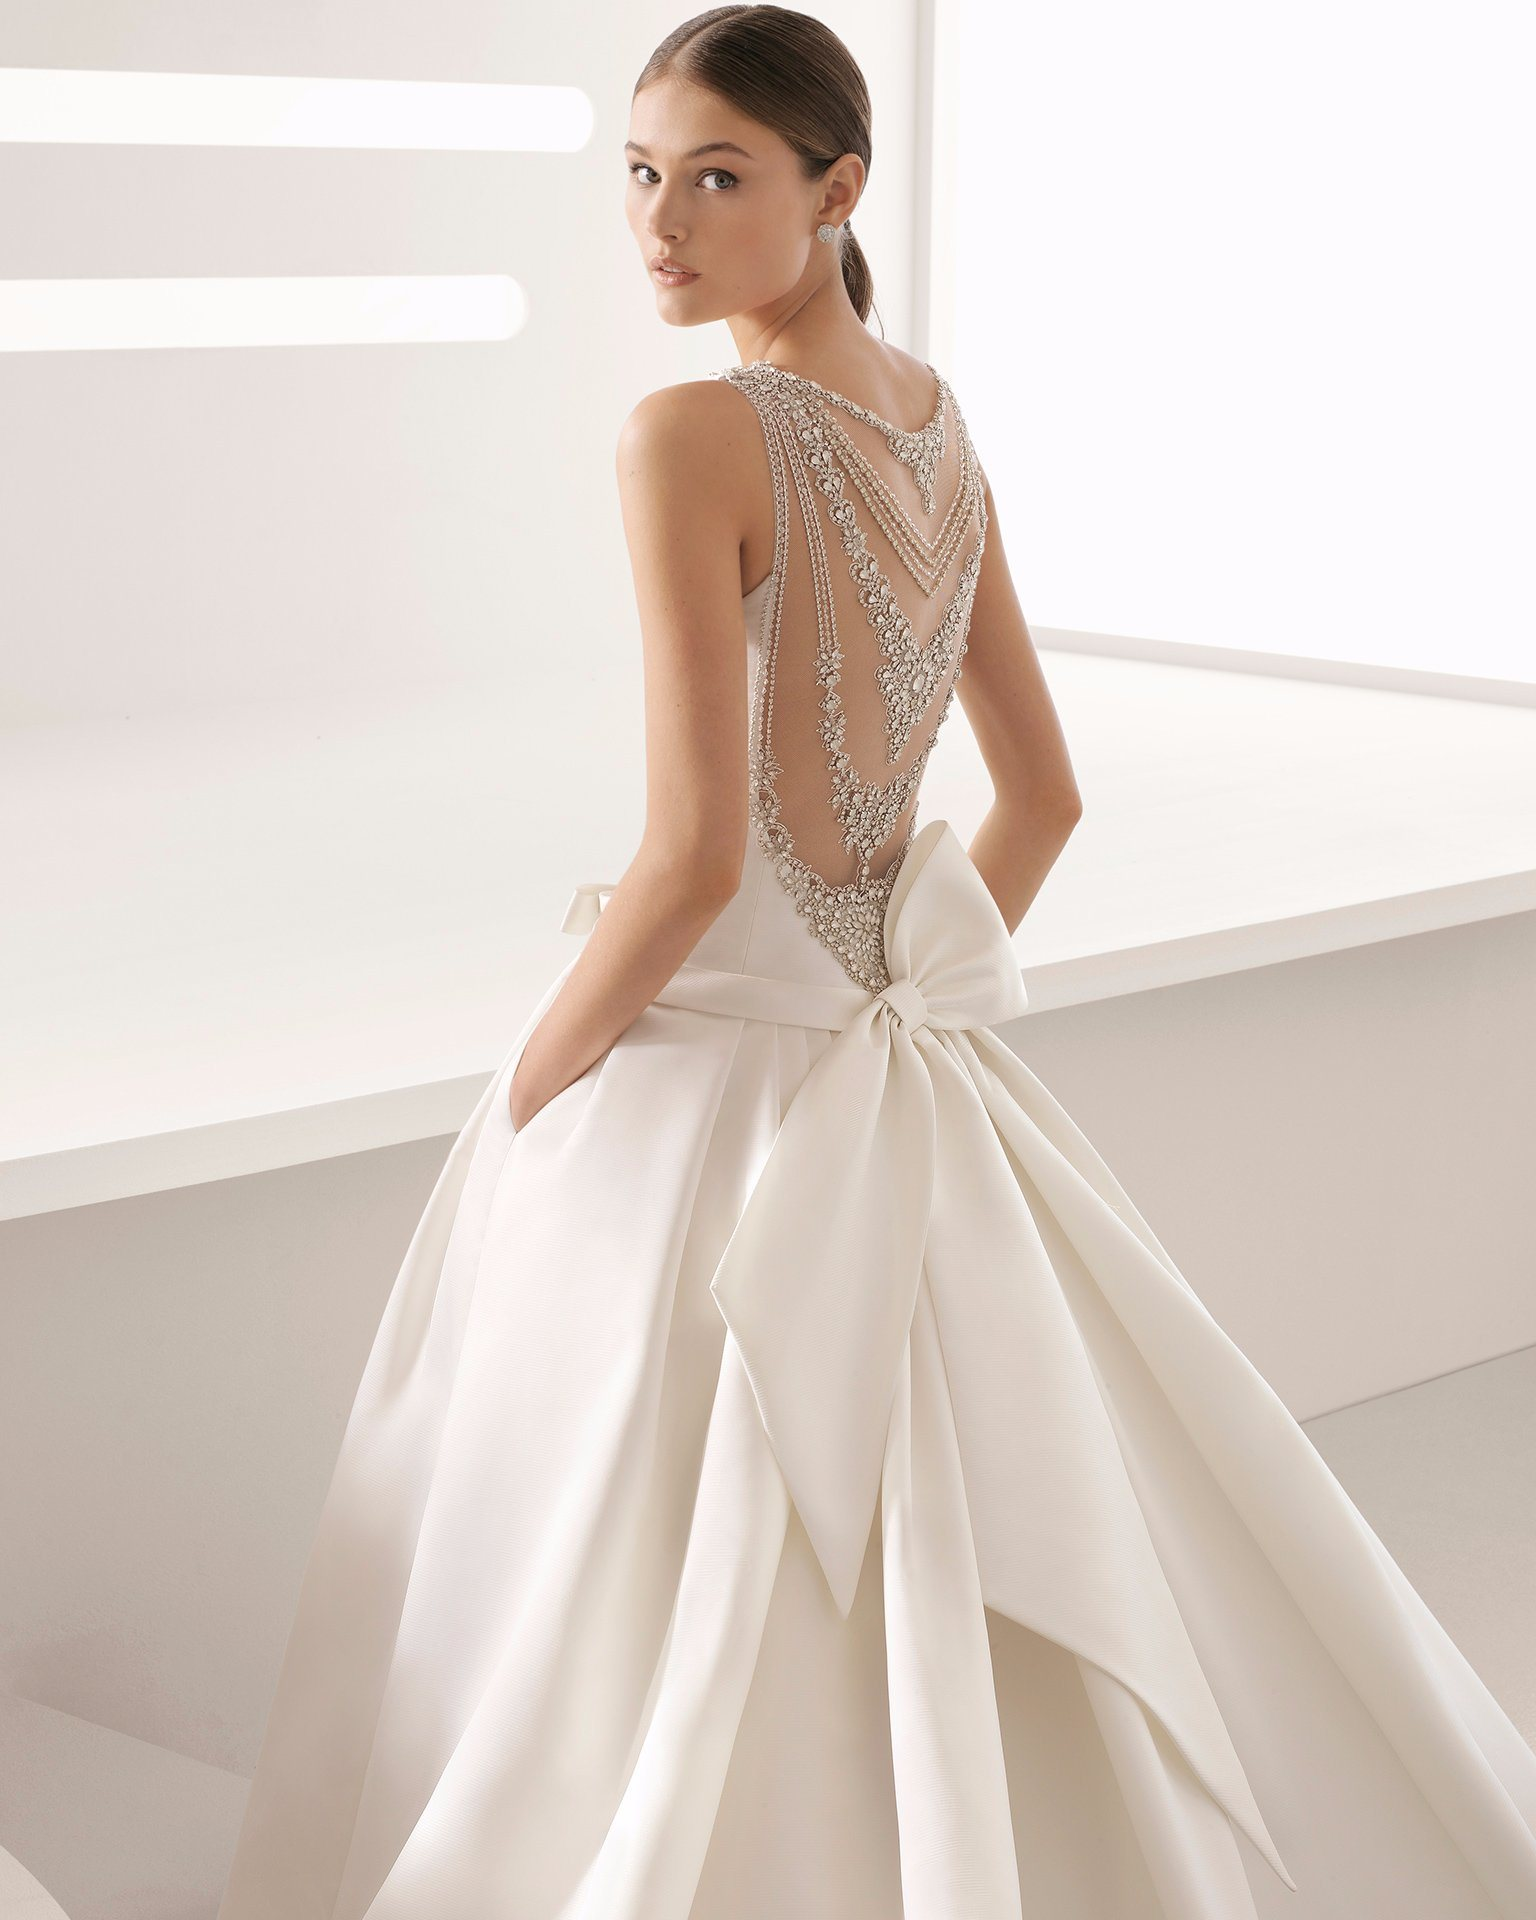 Satin Wedding Dresses with Crystals